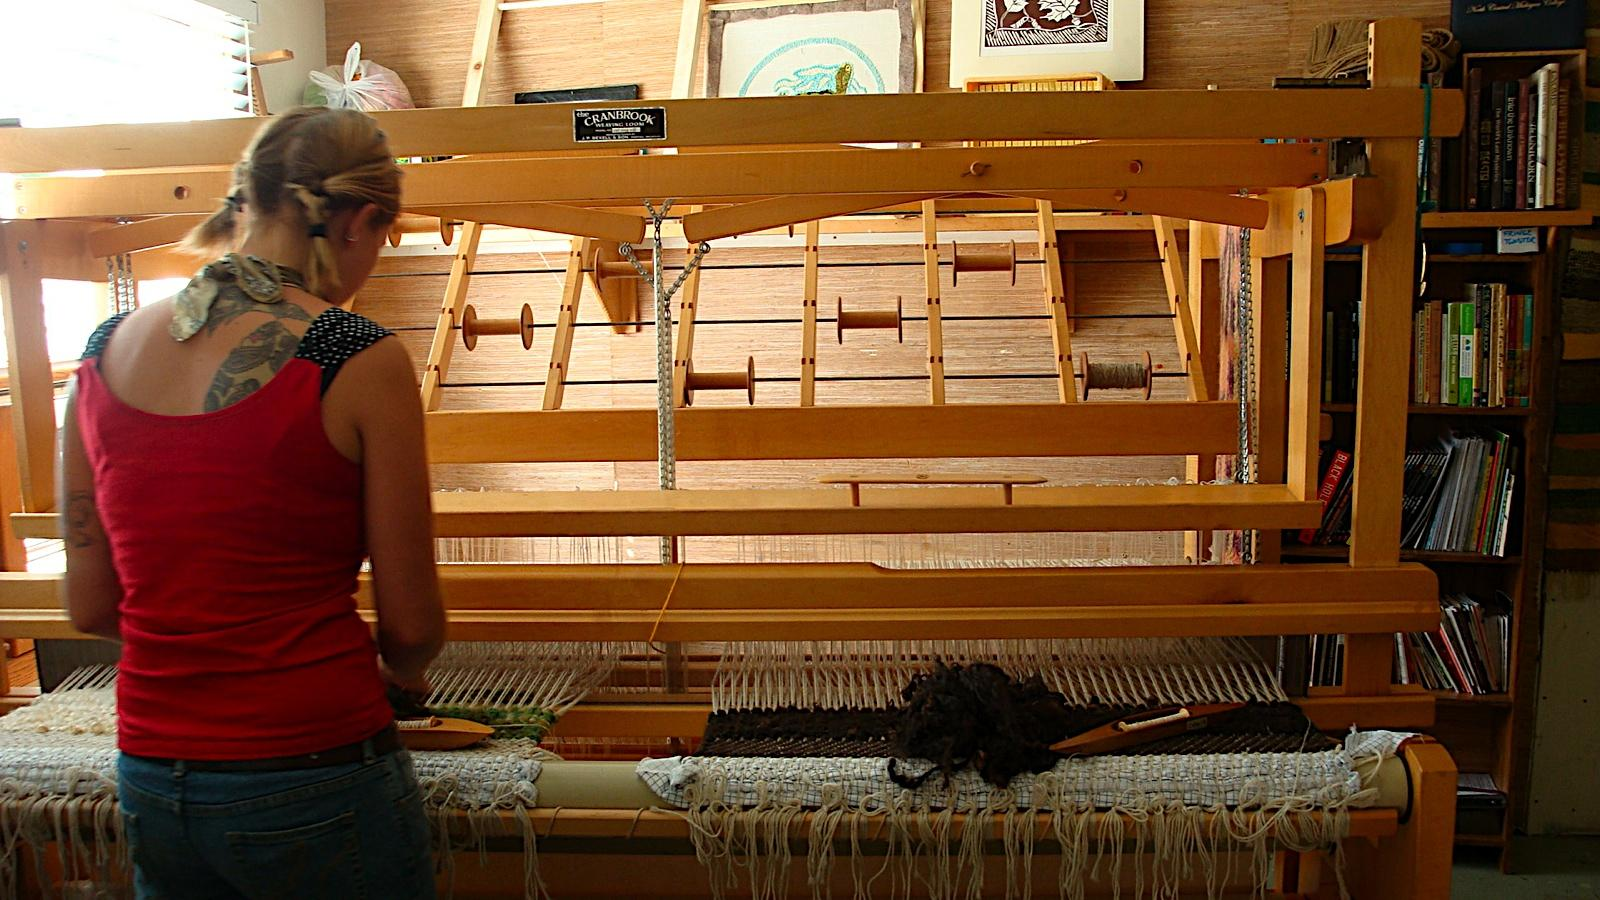 Petrie Learned How To Weave At The Nonprofit Cross Village Rug Works. She  Says Anyone Can Learn How To Weave If They Have Patience And Like To Work  With ...